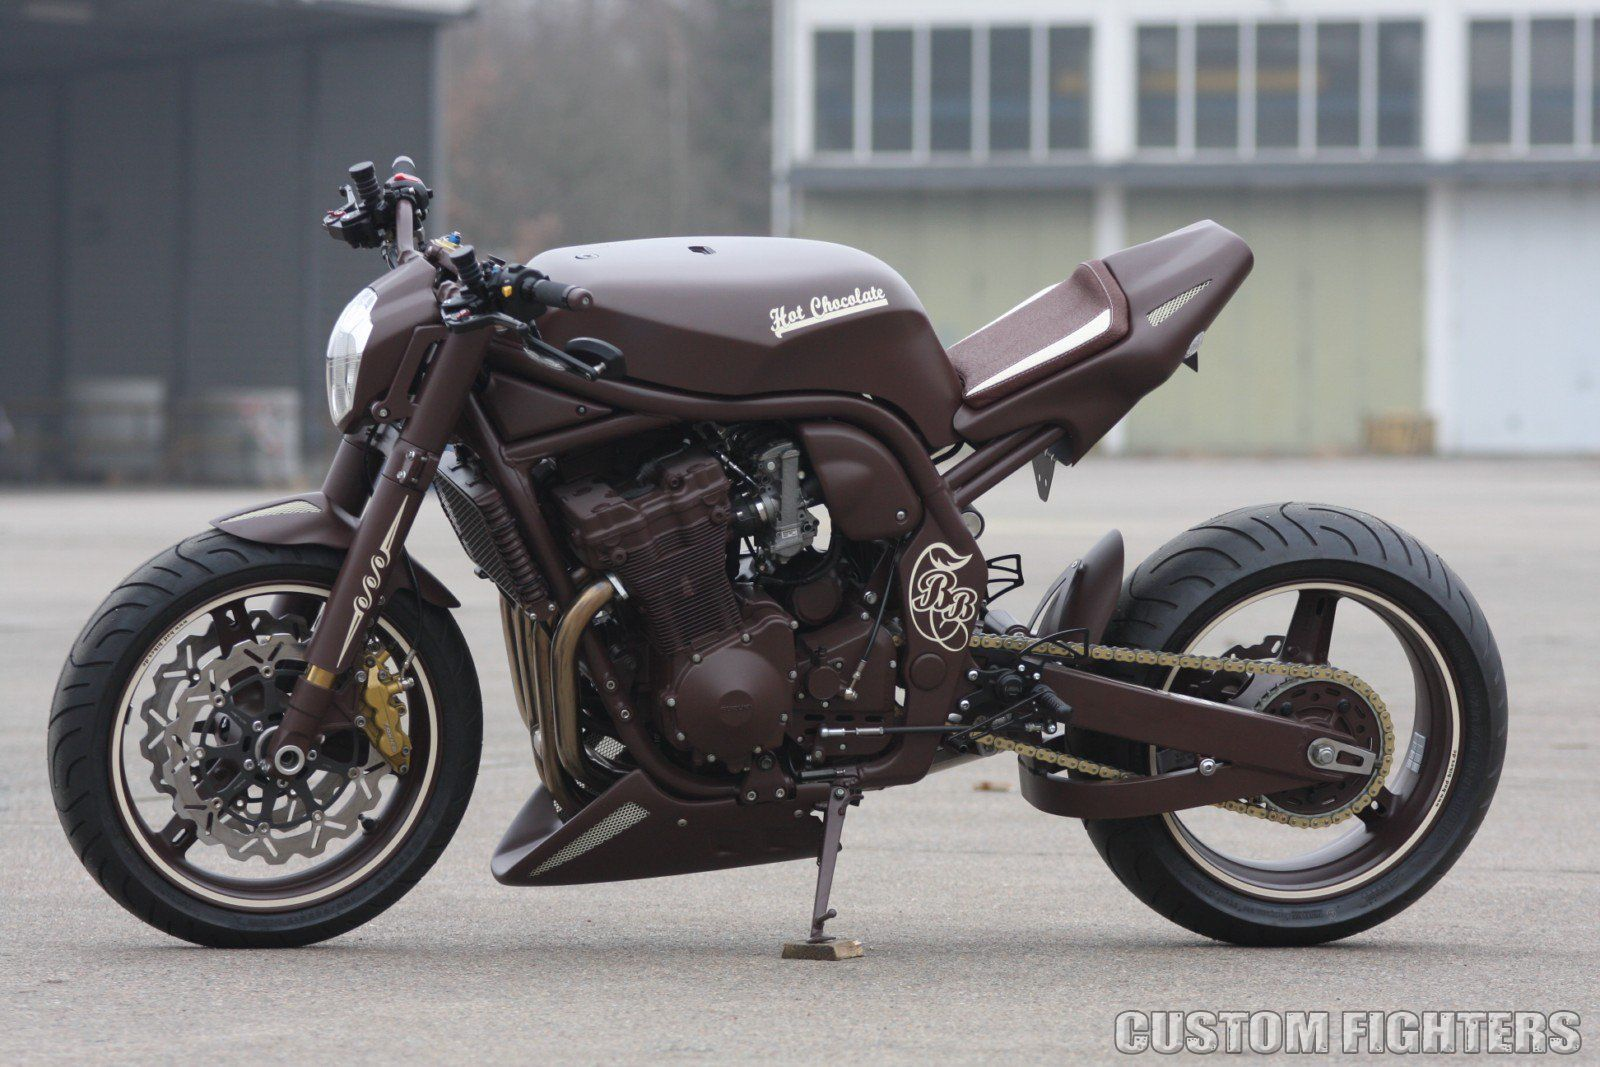 street fighter motorcycles | ... .customfighters.com/1642 ...